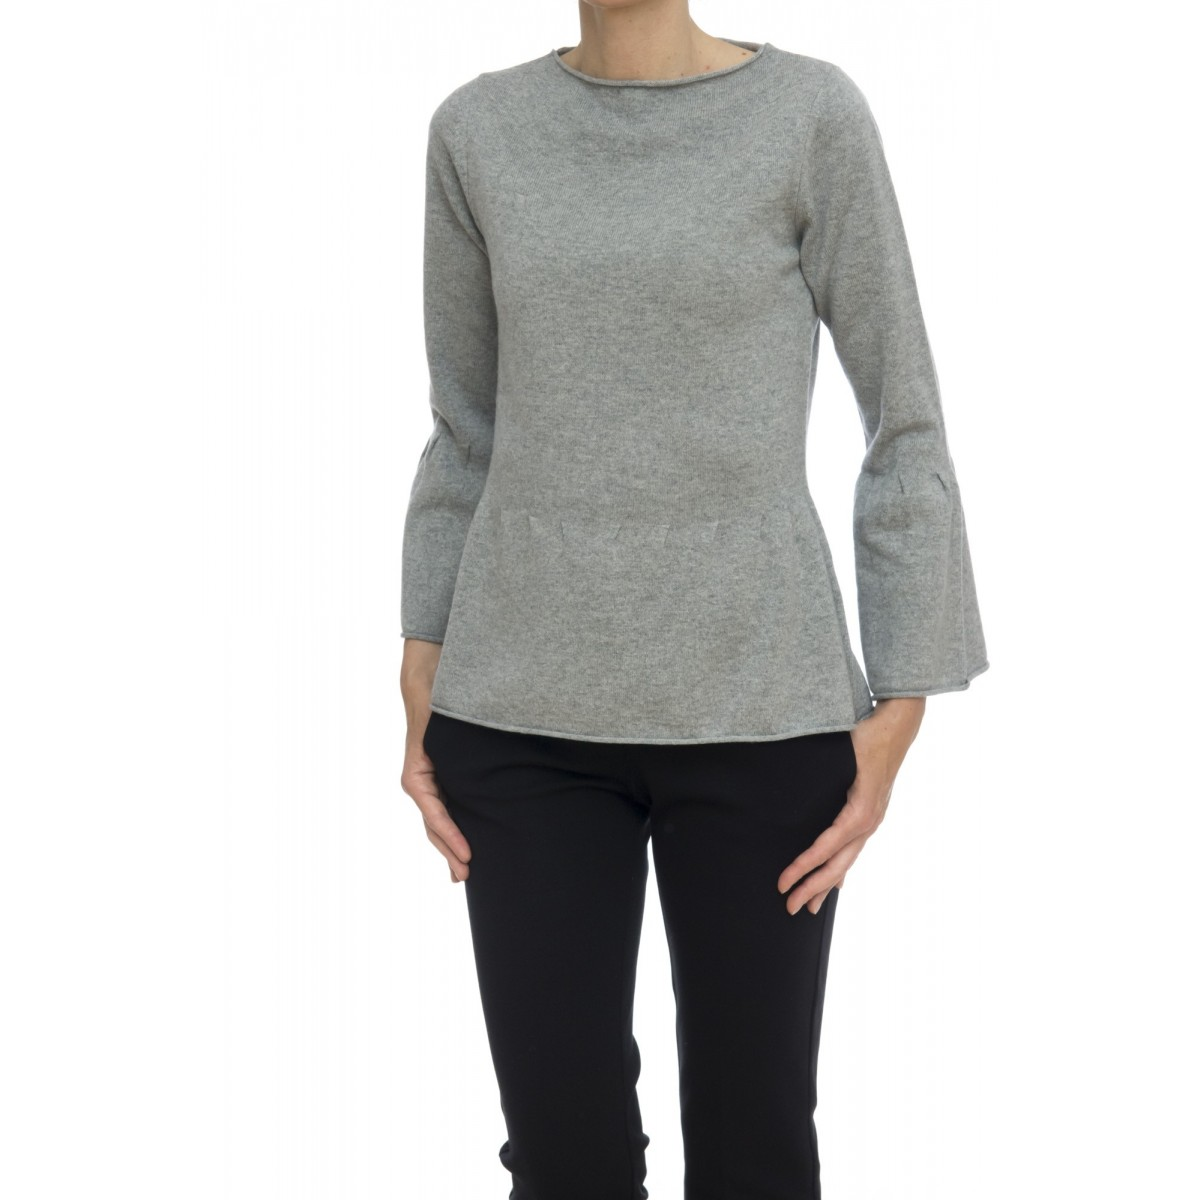 Sweater Woman- 6538/1306